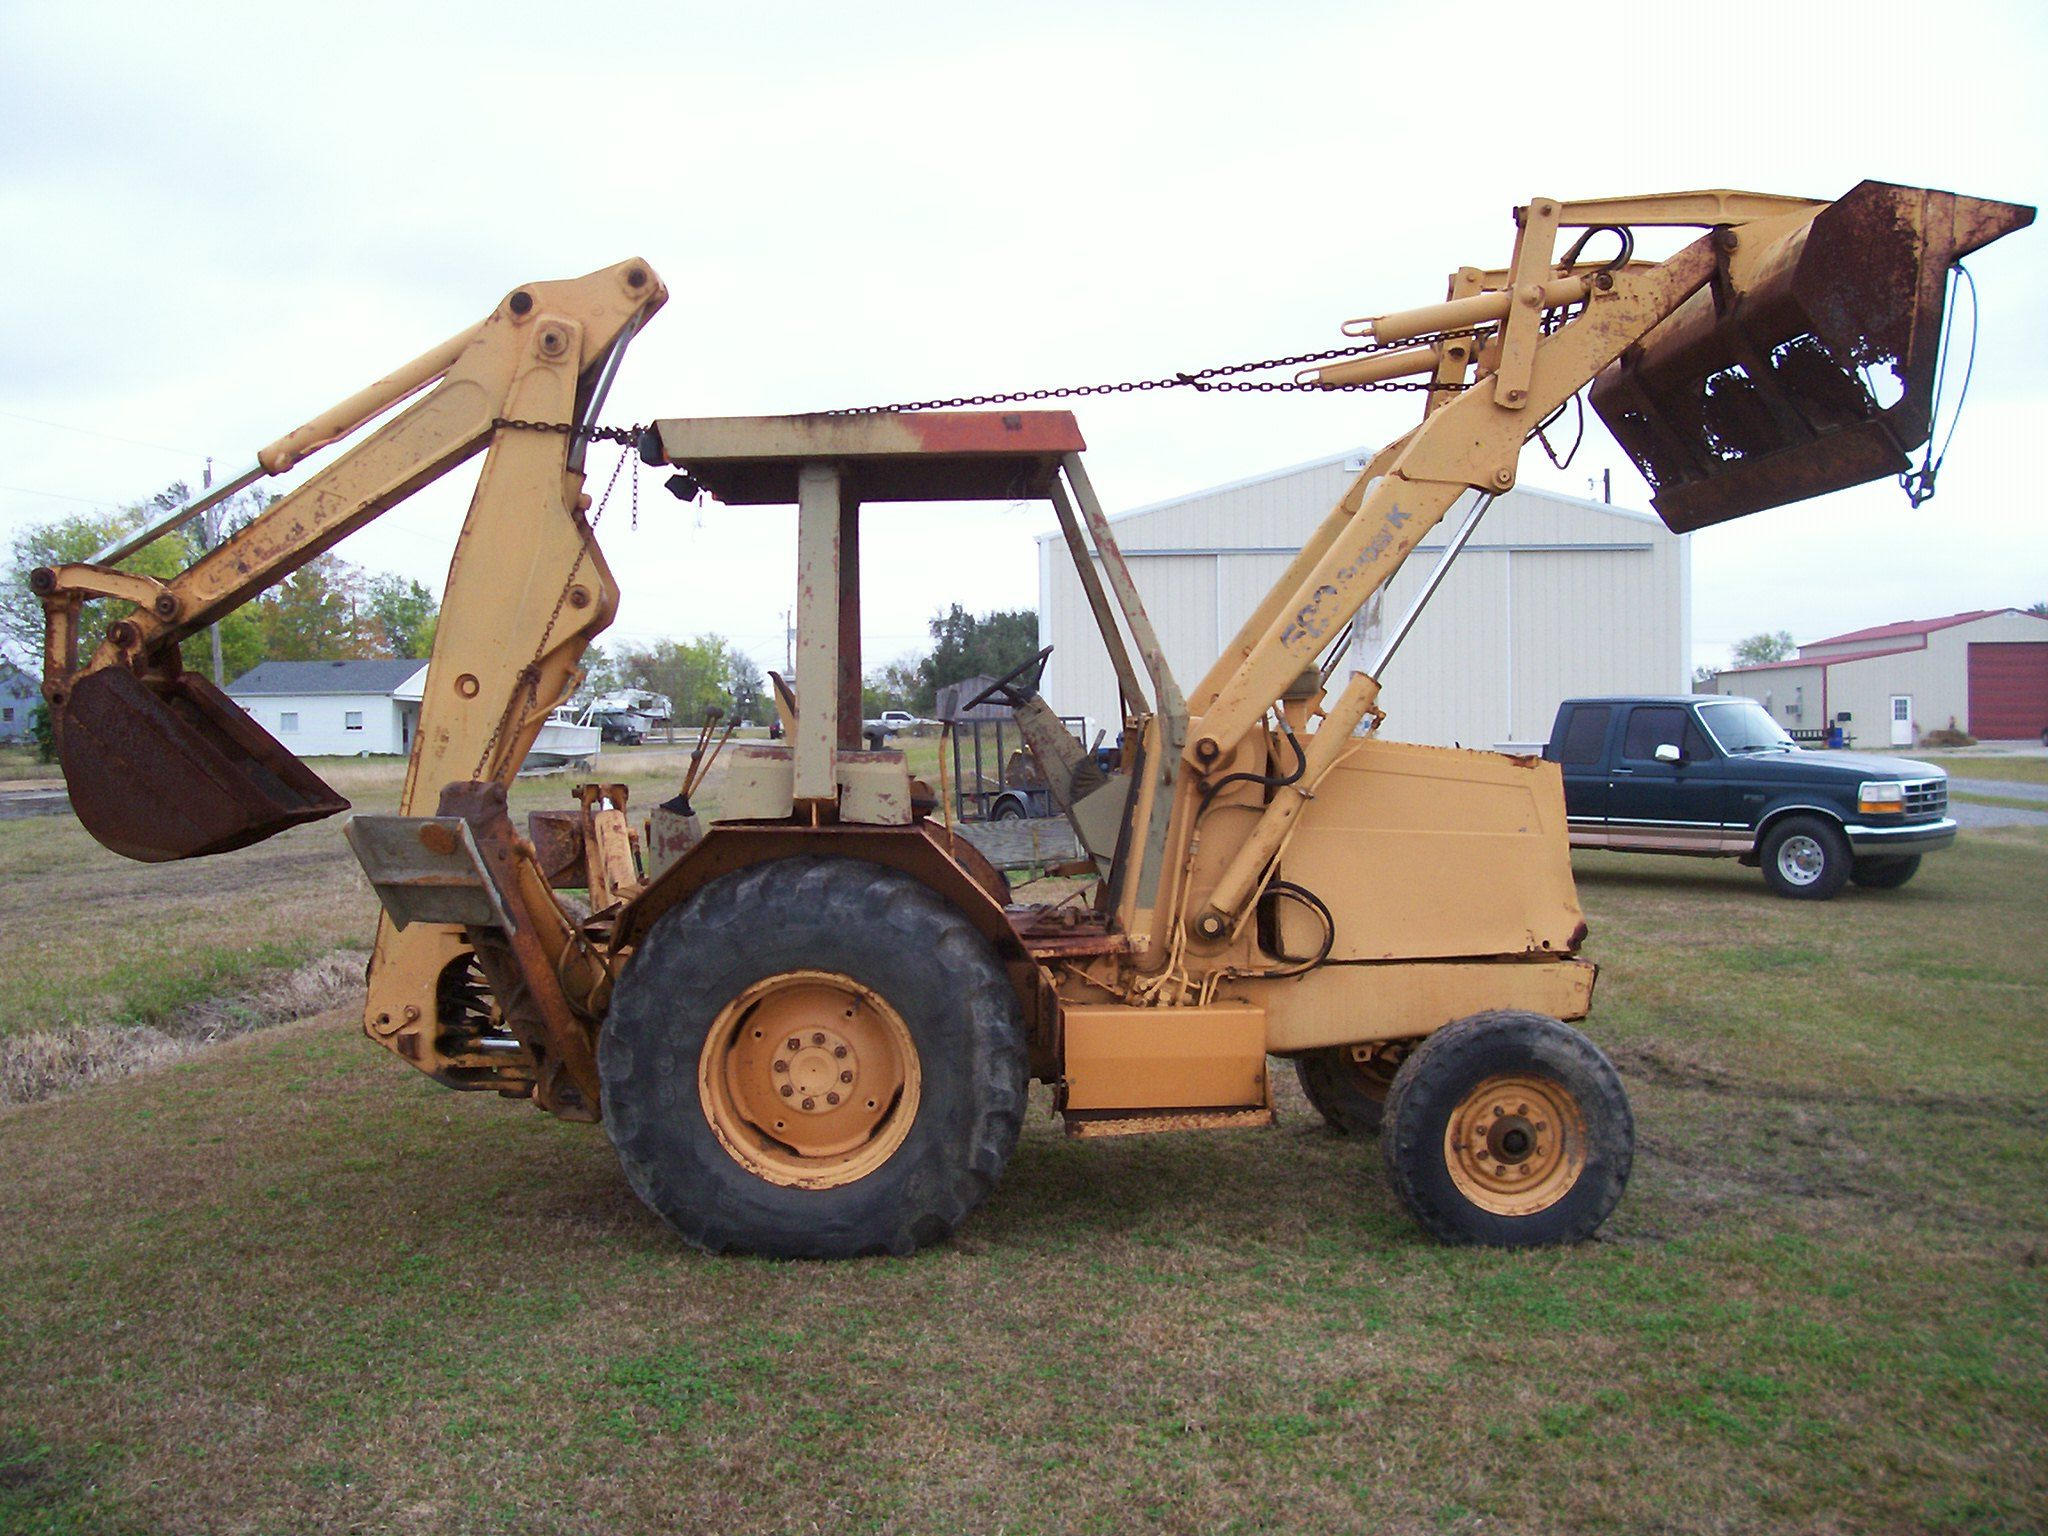 1998 Case 580 Super L Wiring Diagram Diagrams Schematics 580m 257955a1 Hydraulic Pump Tz2 And Pumps Backhoe Parts